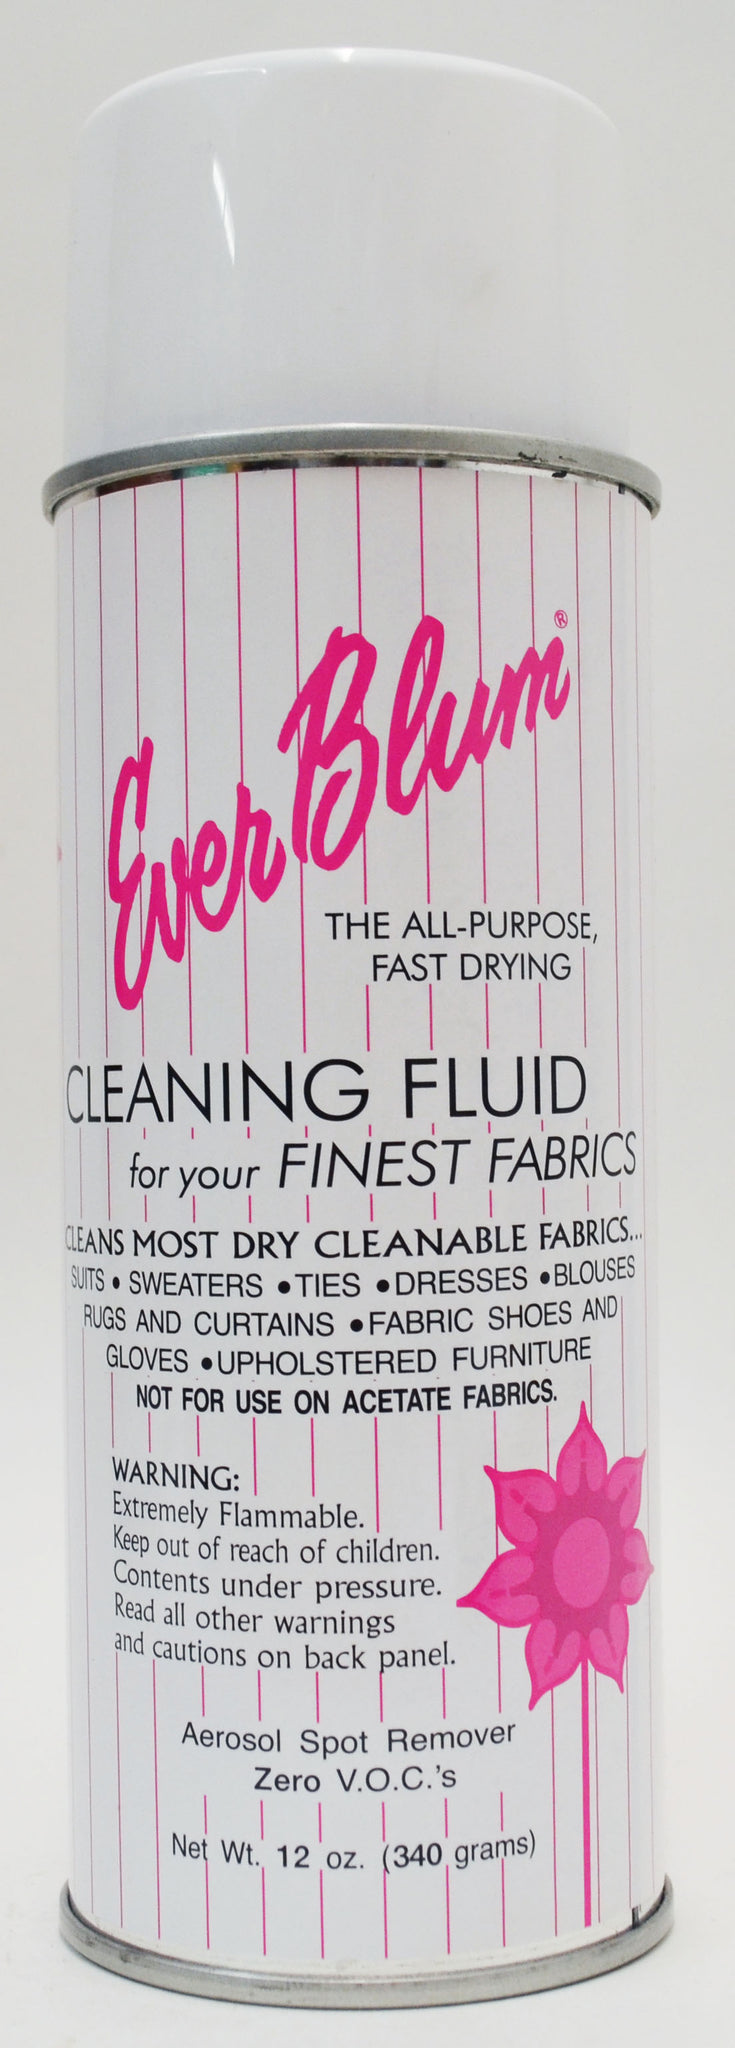 Ever Blum Cleaning Fluid